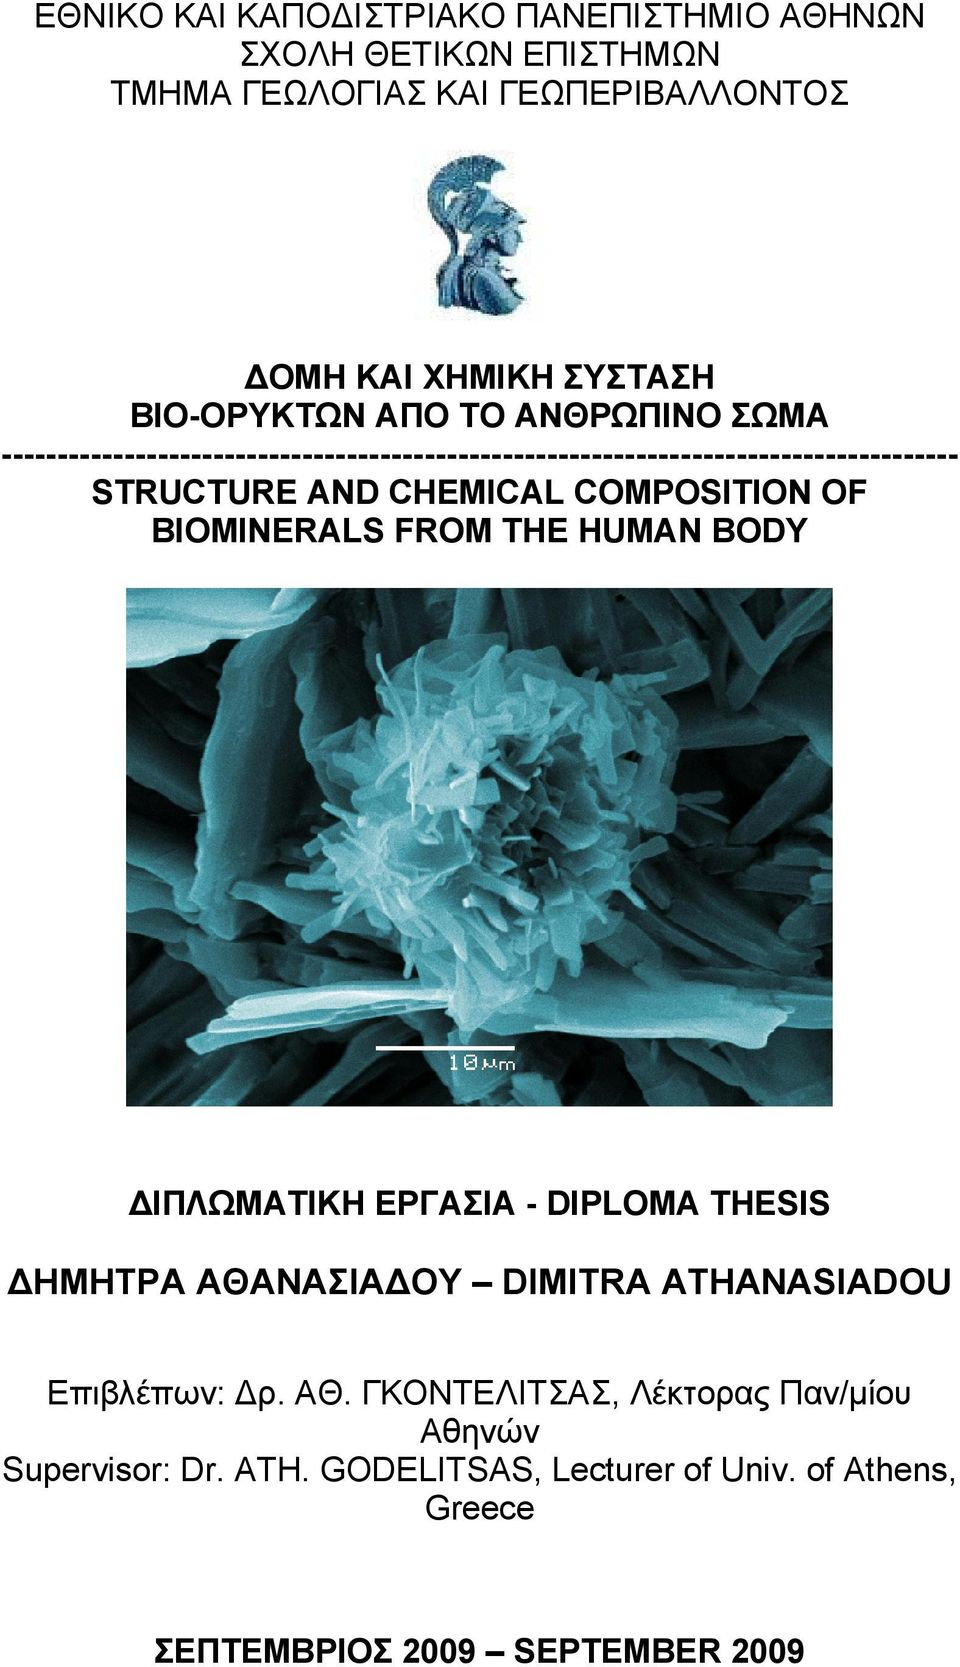 CHEMICAL COMPOSITION OF BIOMINERALS FROM THE HUMAN BODY ΔΙΠΛΩΜΑΤΙΚΗ ΕΡΓΑΣΙΑ - DIPLOMA THESIS ΔΗΜΗΤΡΑ ΑΘΑΝΑΣΙΑΔΟΥ DIMITRA ATHANASIADOU